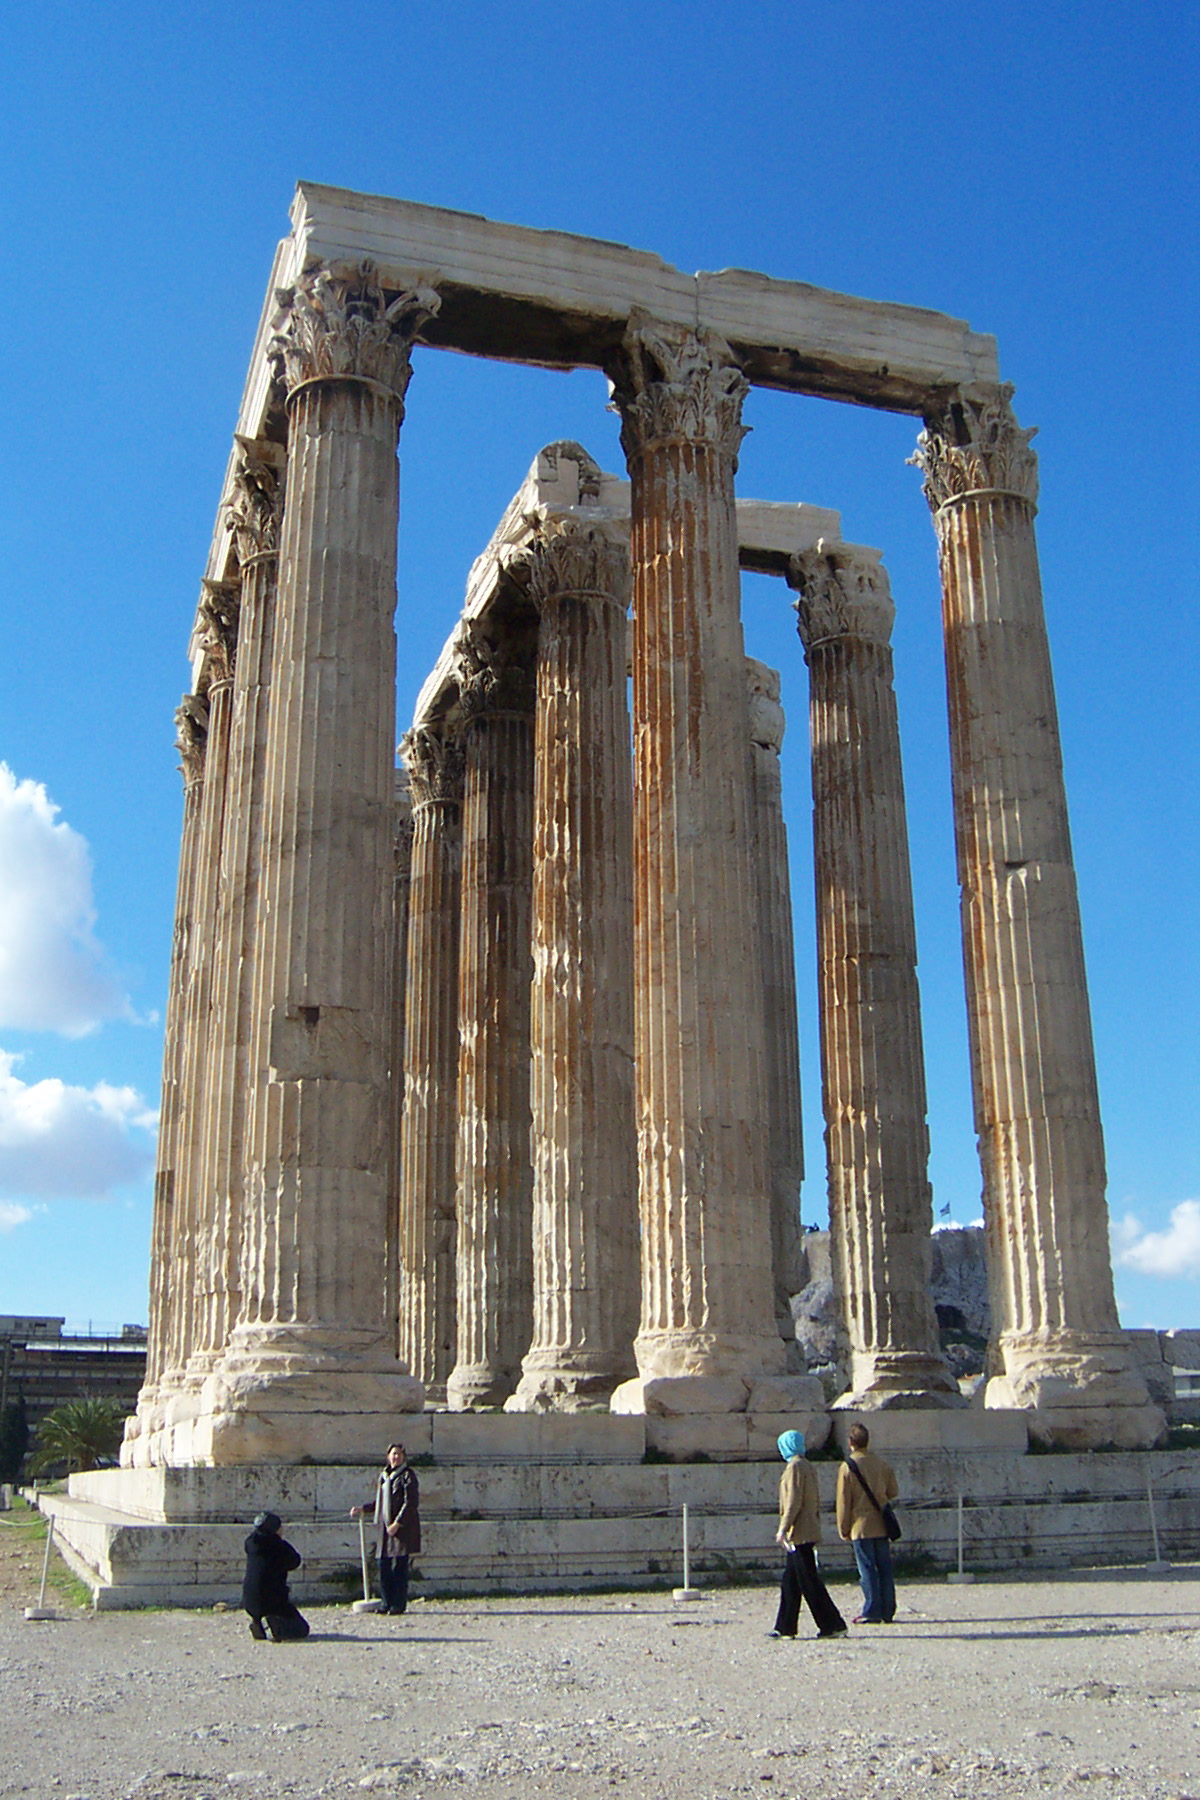 File:Temple of Olympian Zeus (Athens).jpg